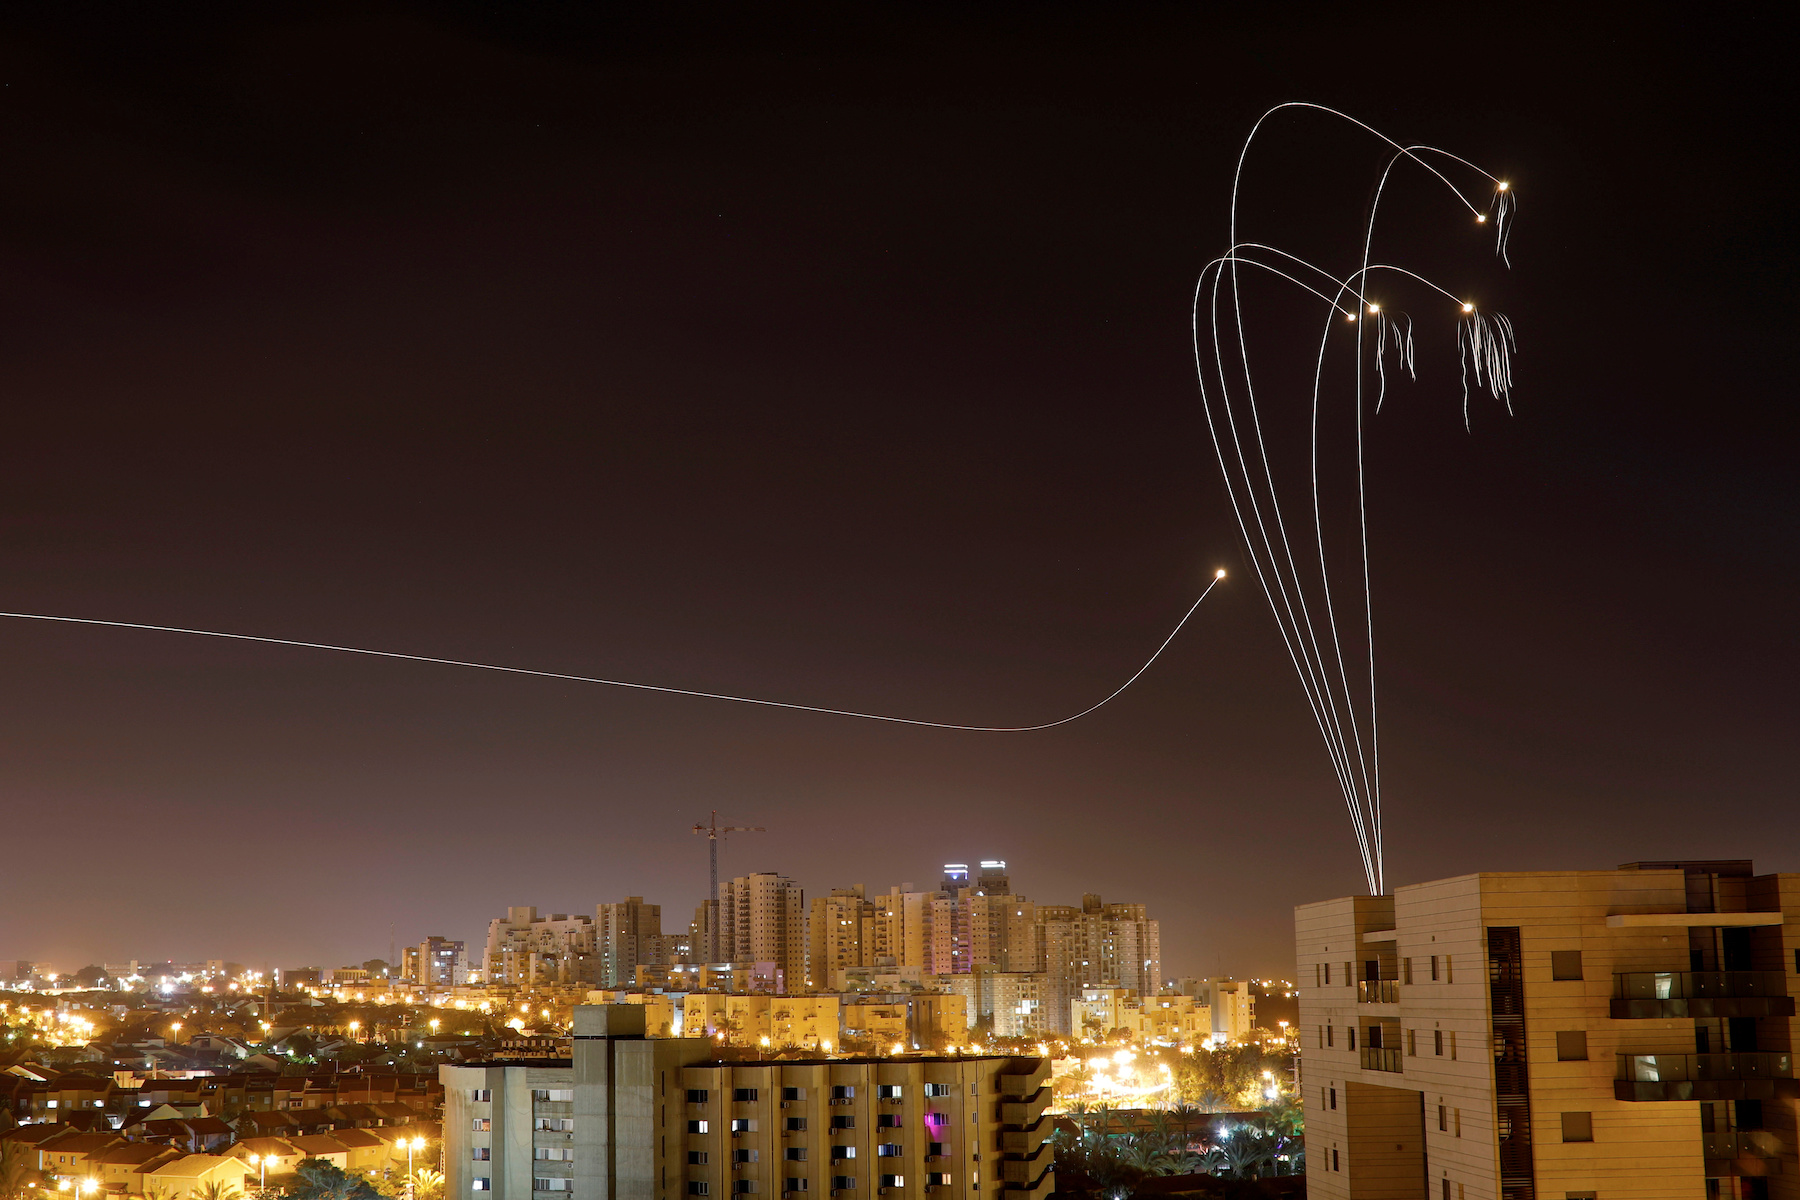 Iron Dome anti-missile system fires interception missiles as rockets are launched from Gaza towards Israel as seen from the city of Ashkelon, Israel